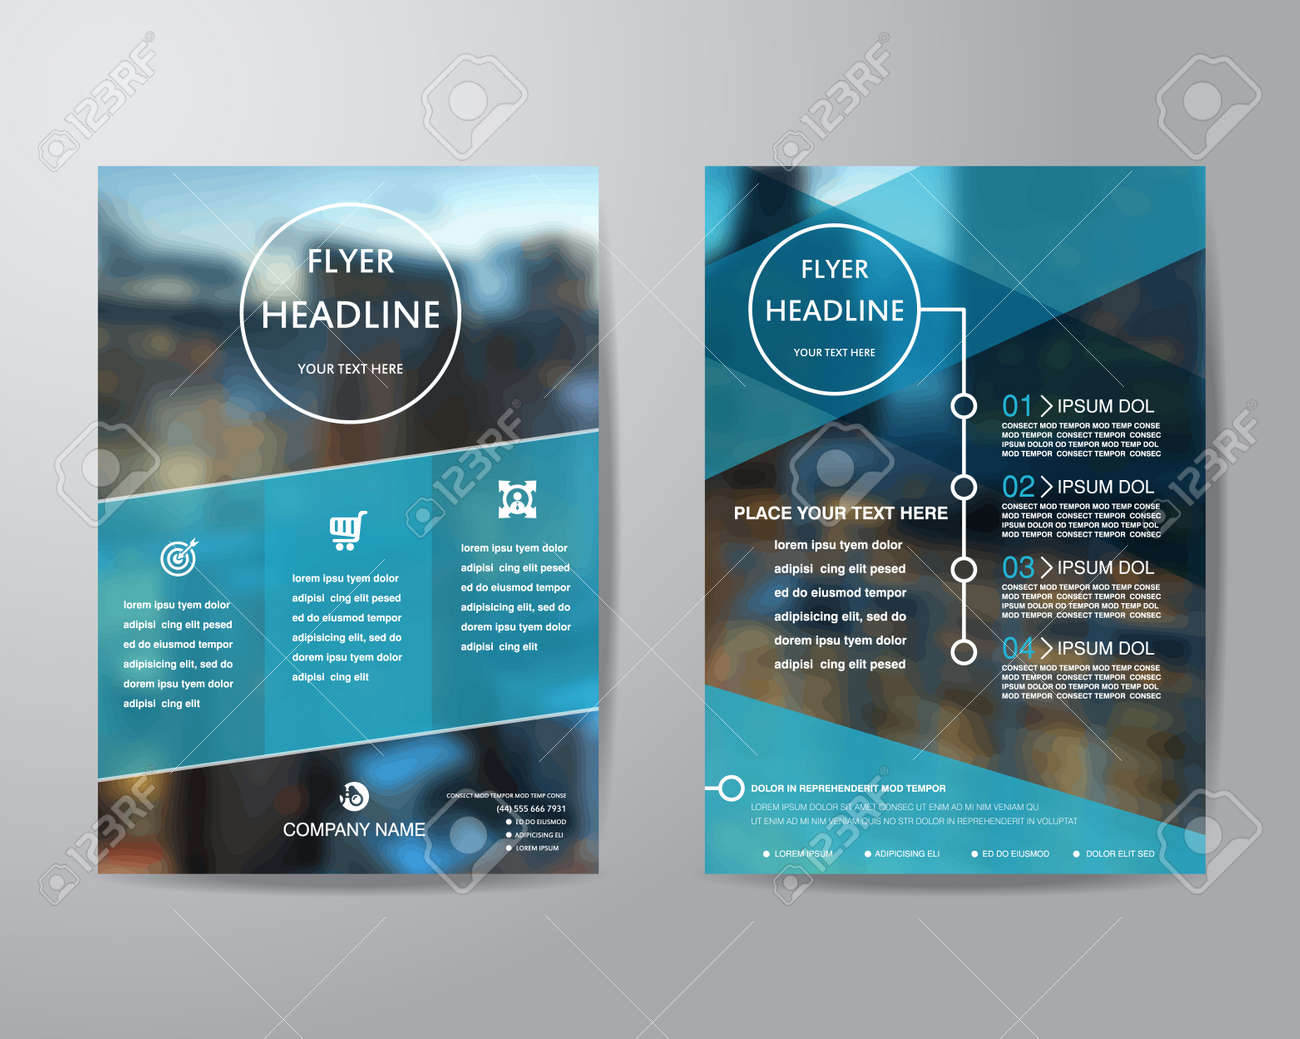 flyer images stock pictures royalty flyer photos and stock flyer business brochure flyer design layout template in a4 size blur background